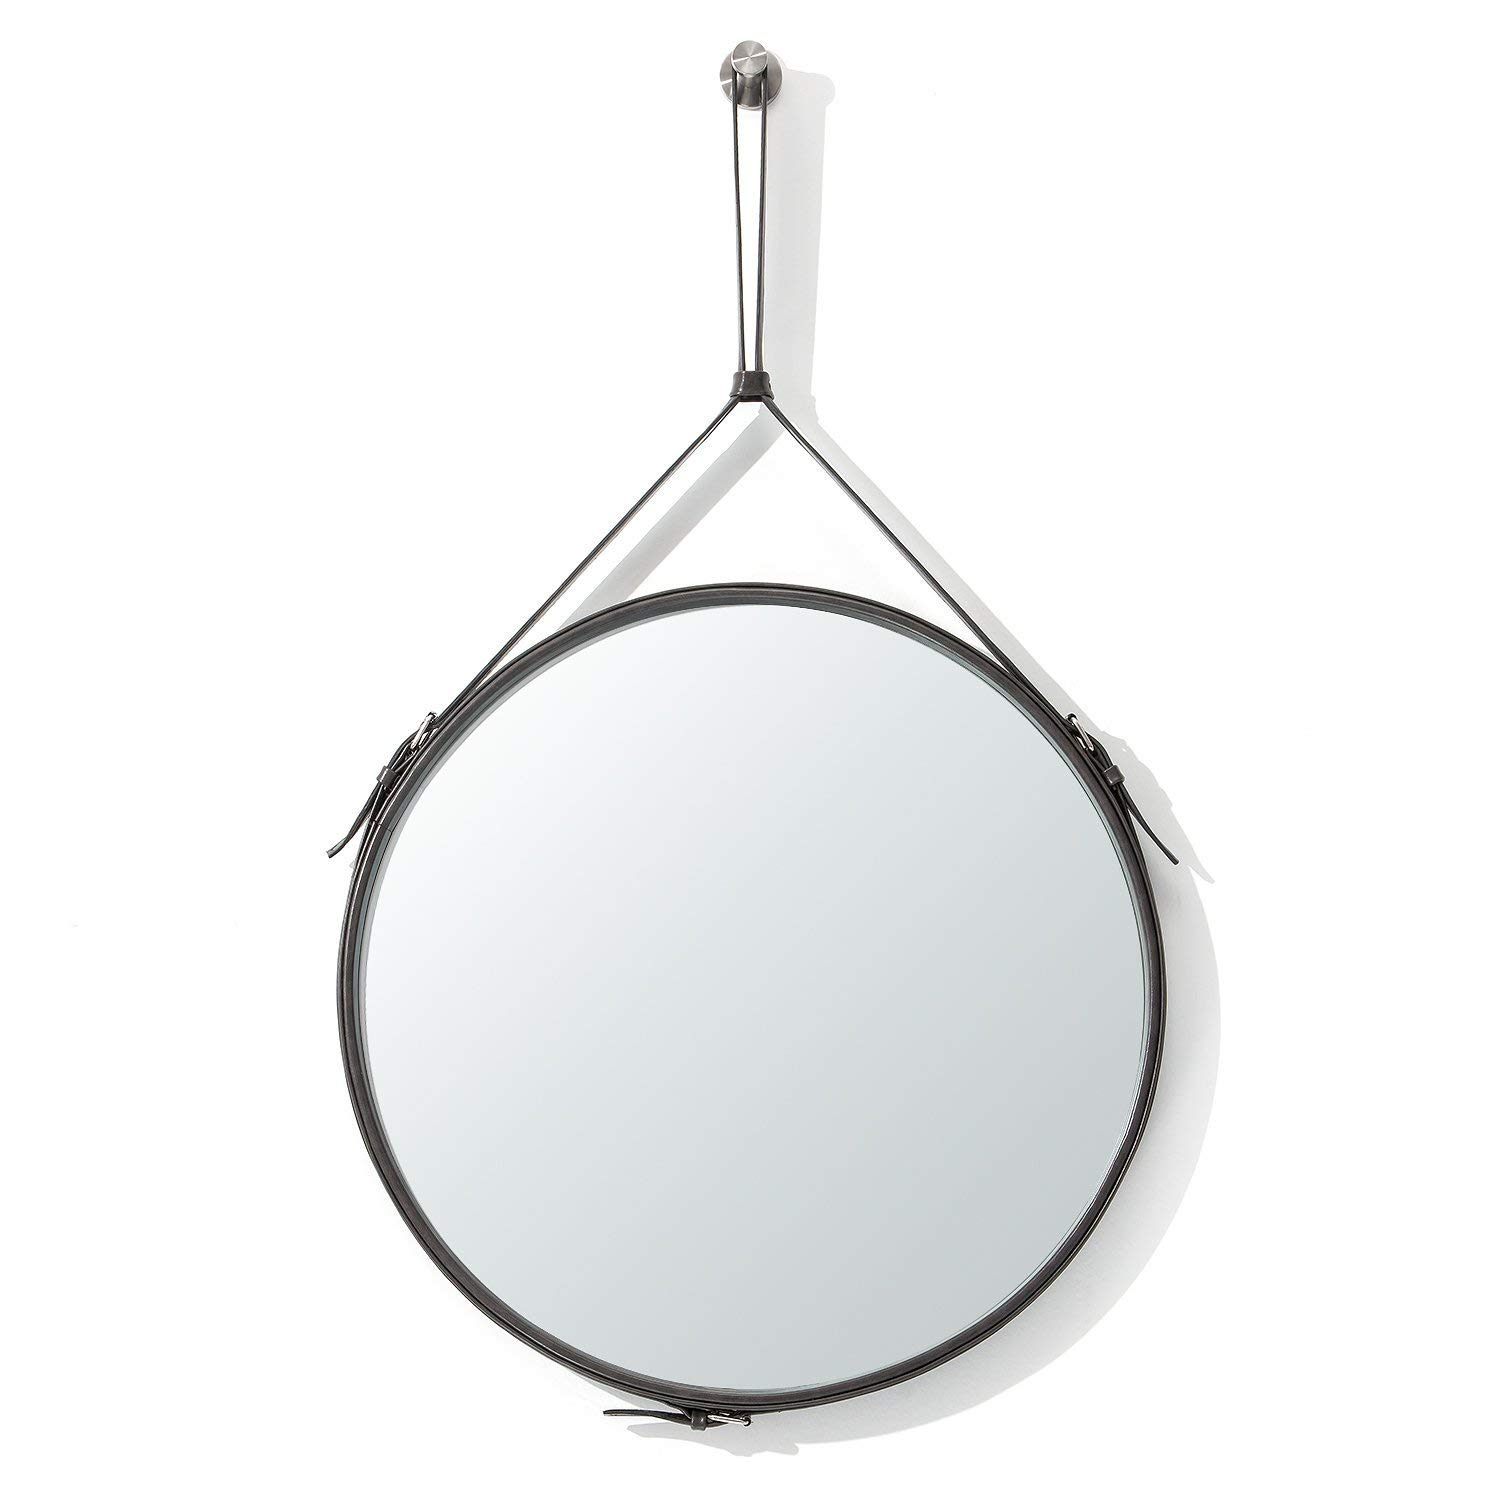 Buy Decorative Wall Mirror Round Shape Kentwood Collection